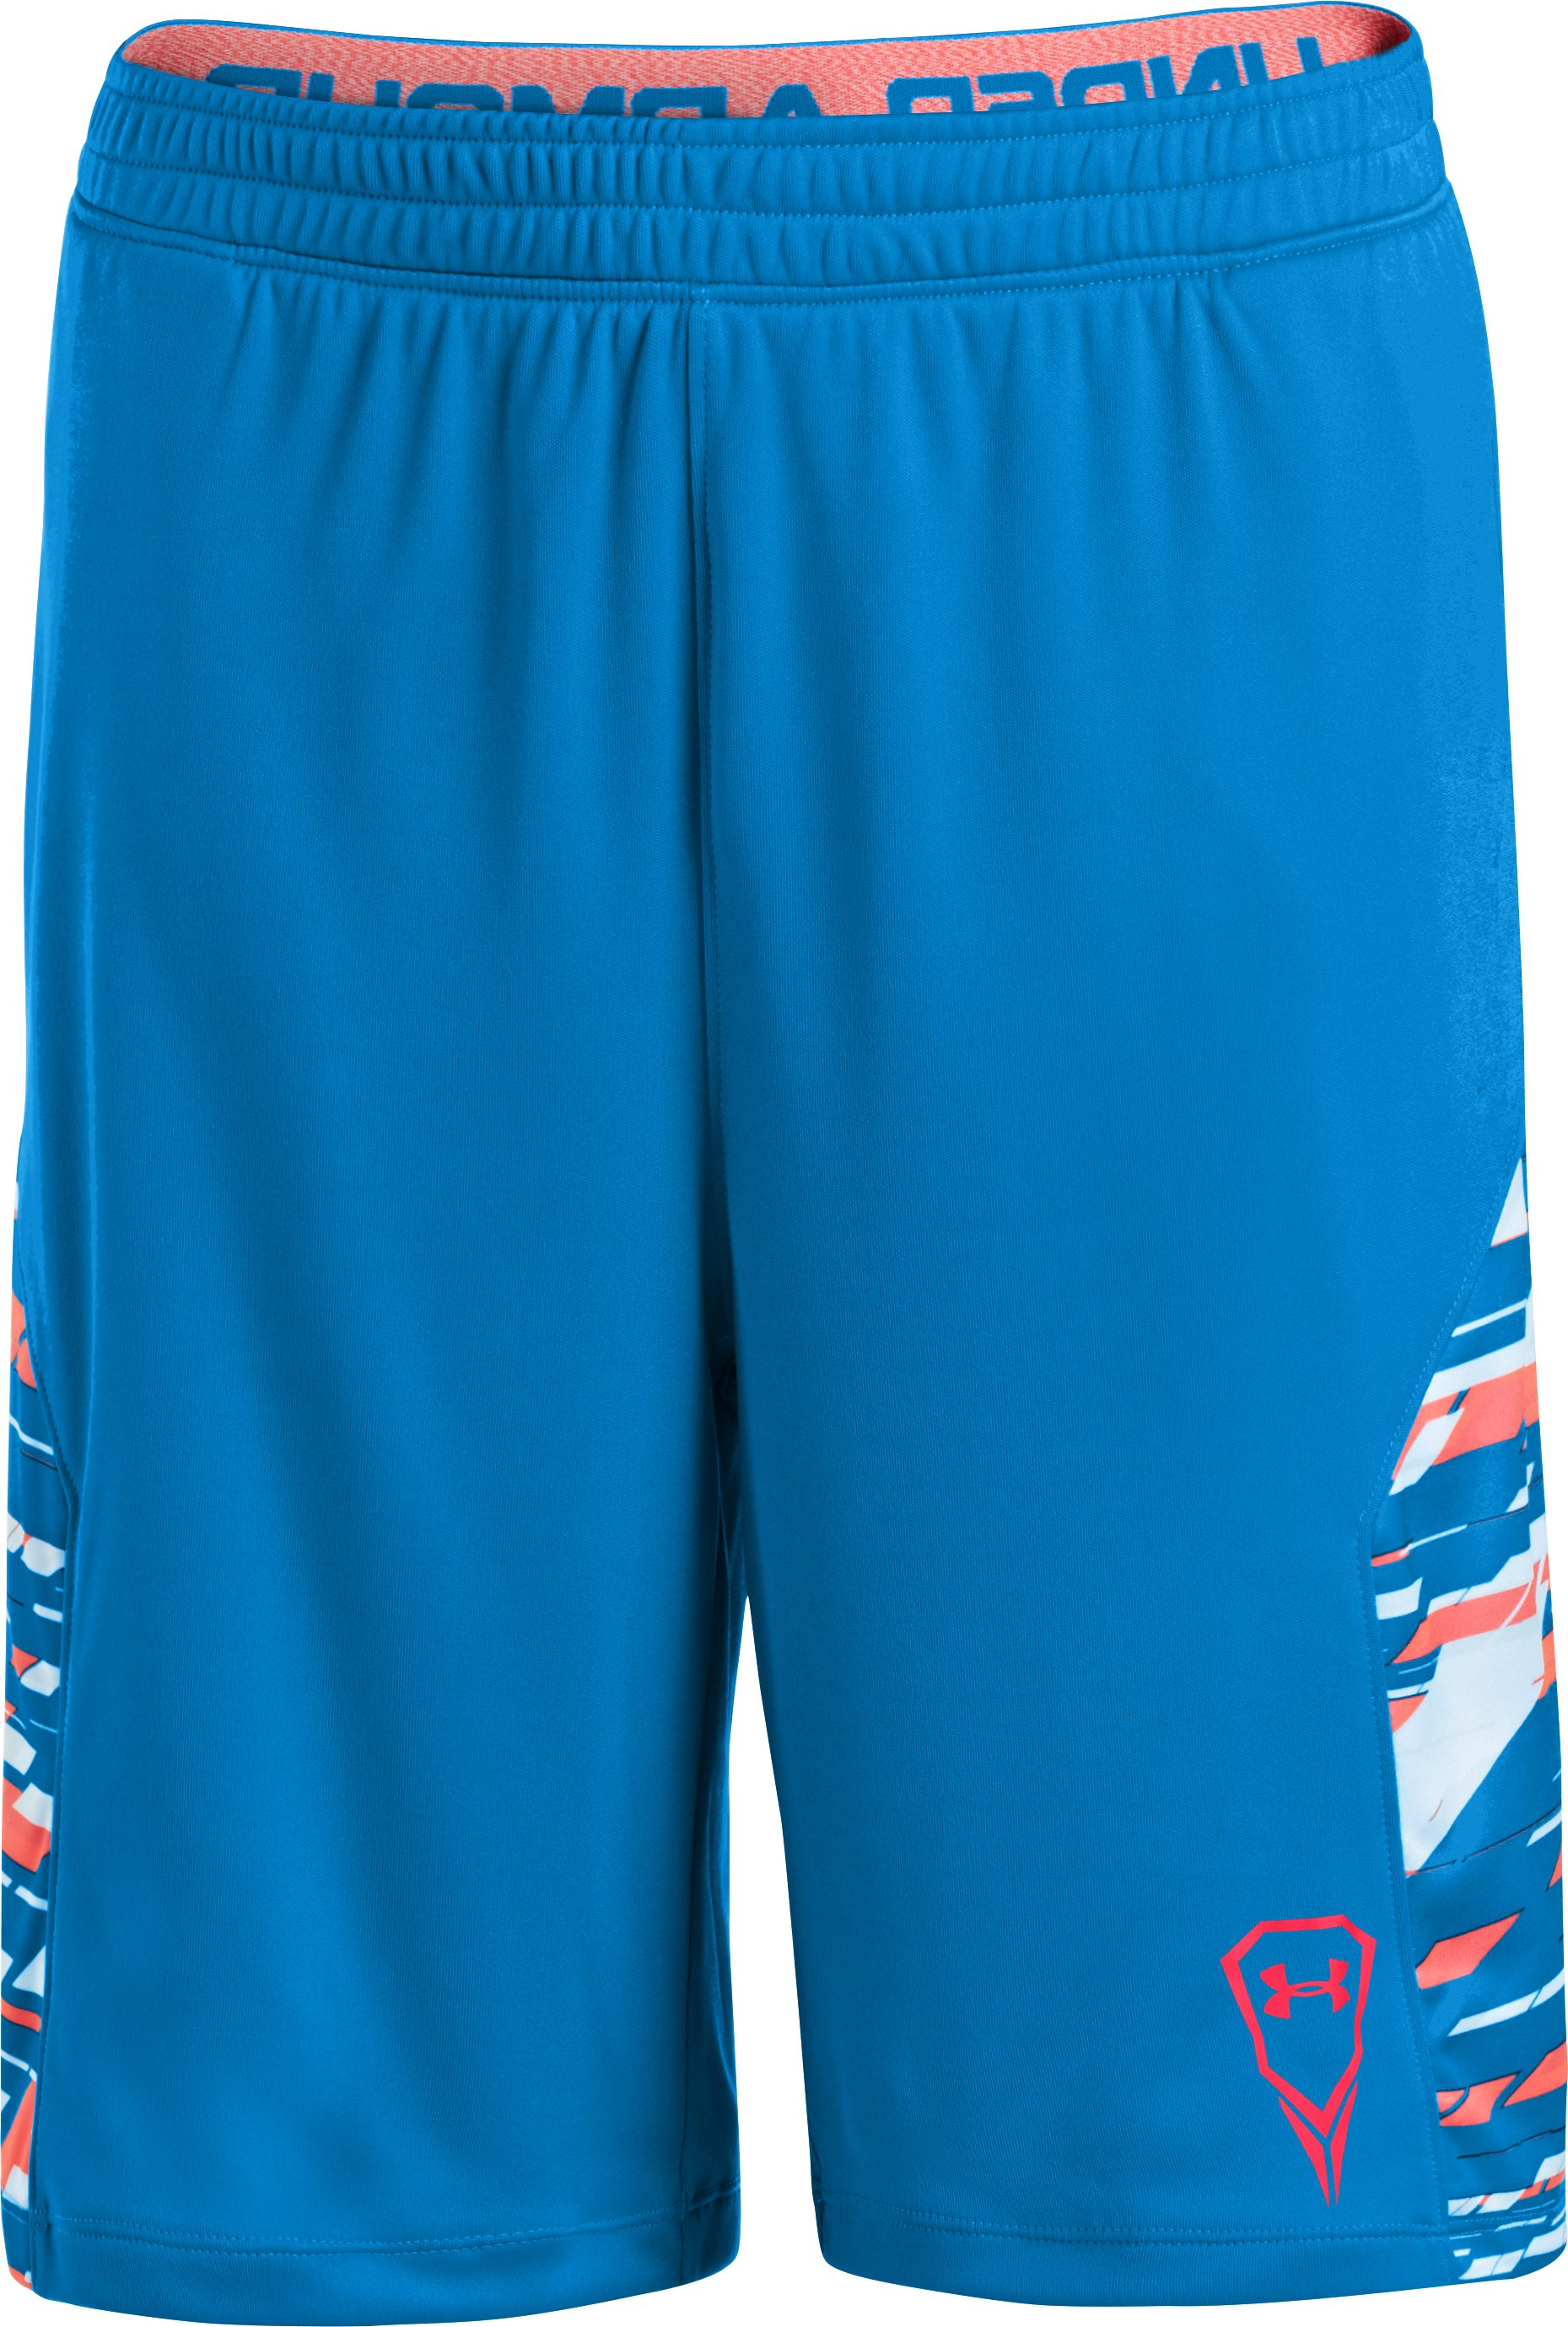 Boys' UA Uri Dicuhluss Shorts, ELECTRIC BLUE, undefined